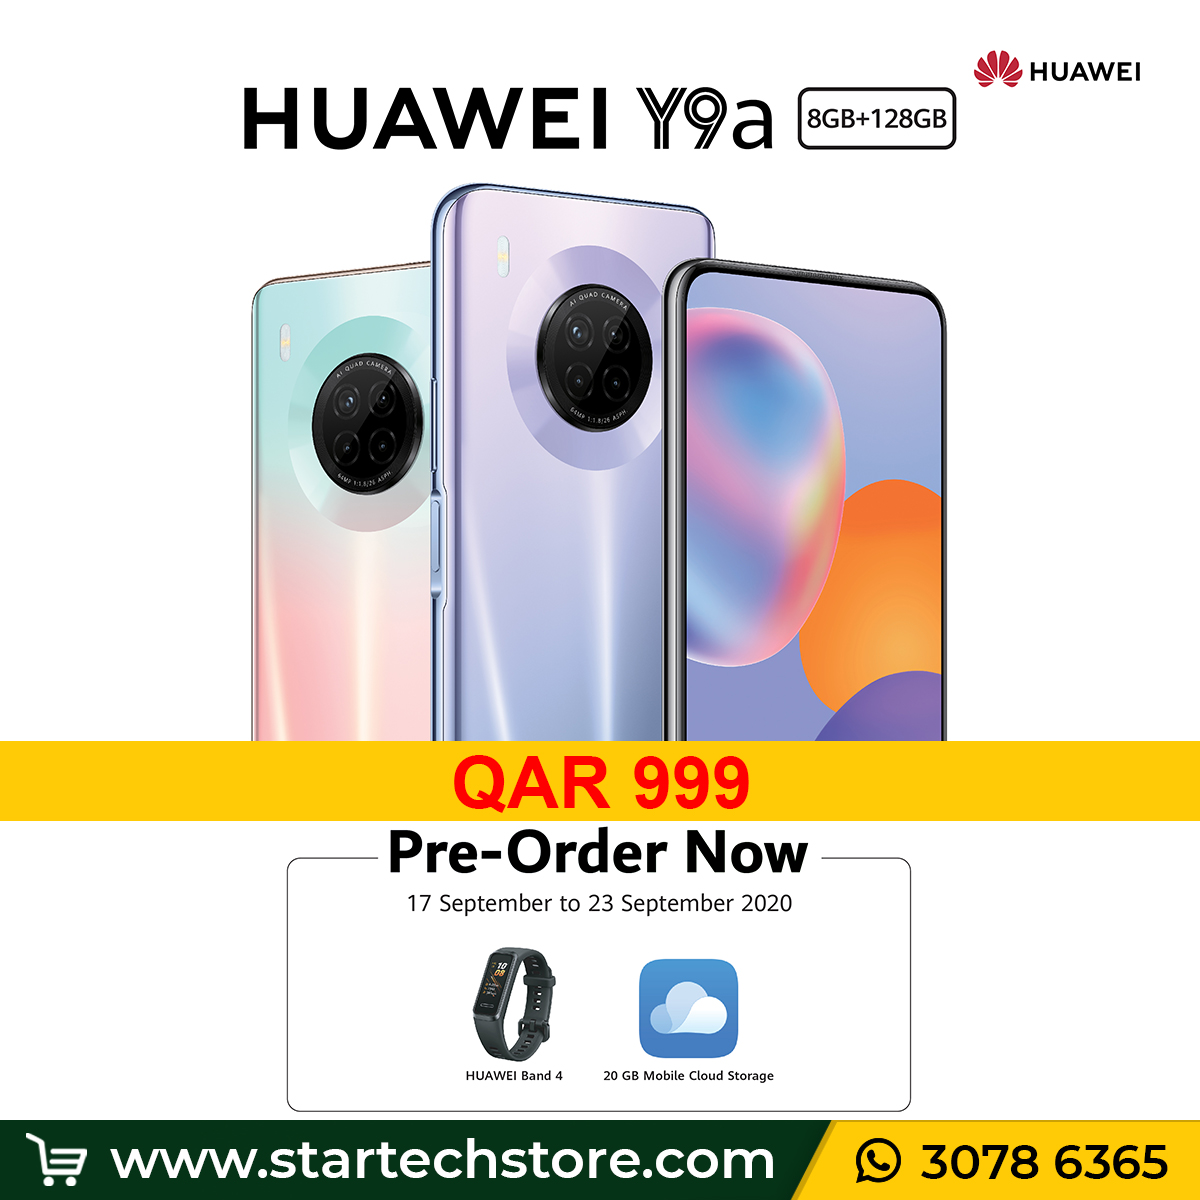 Pre-order the all new #HUAWEIY9a now for QAR 999 and get Free gifts. Revolutionize your photography with #HUAWEIY9a's super 64MP Quad Camera, do more with 4,200mAh battery and 40W super fast charging. Get yours now. Hurry..!!  🔗 Link: https://t.co/aL7scvTCyP https://t.co/bqbPyXKdU2